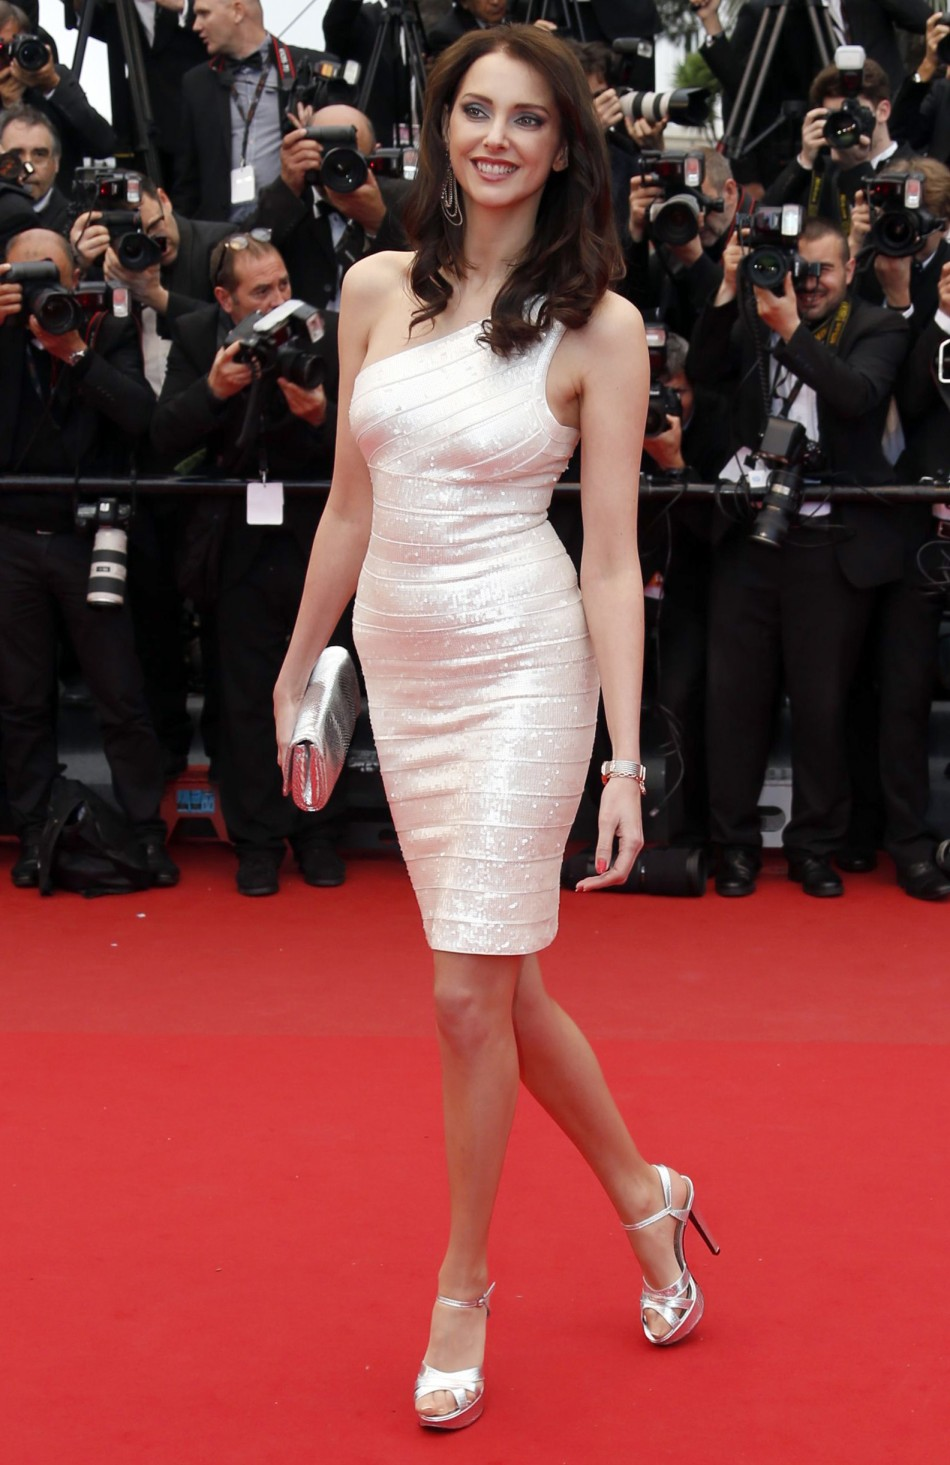 French actress Frederique Bel poses on the red carpet as she arrives for the screening of the film Inside Llewyn Davis in competition during the 66th Cannes Film Festival in Cannes May 19, 2013.